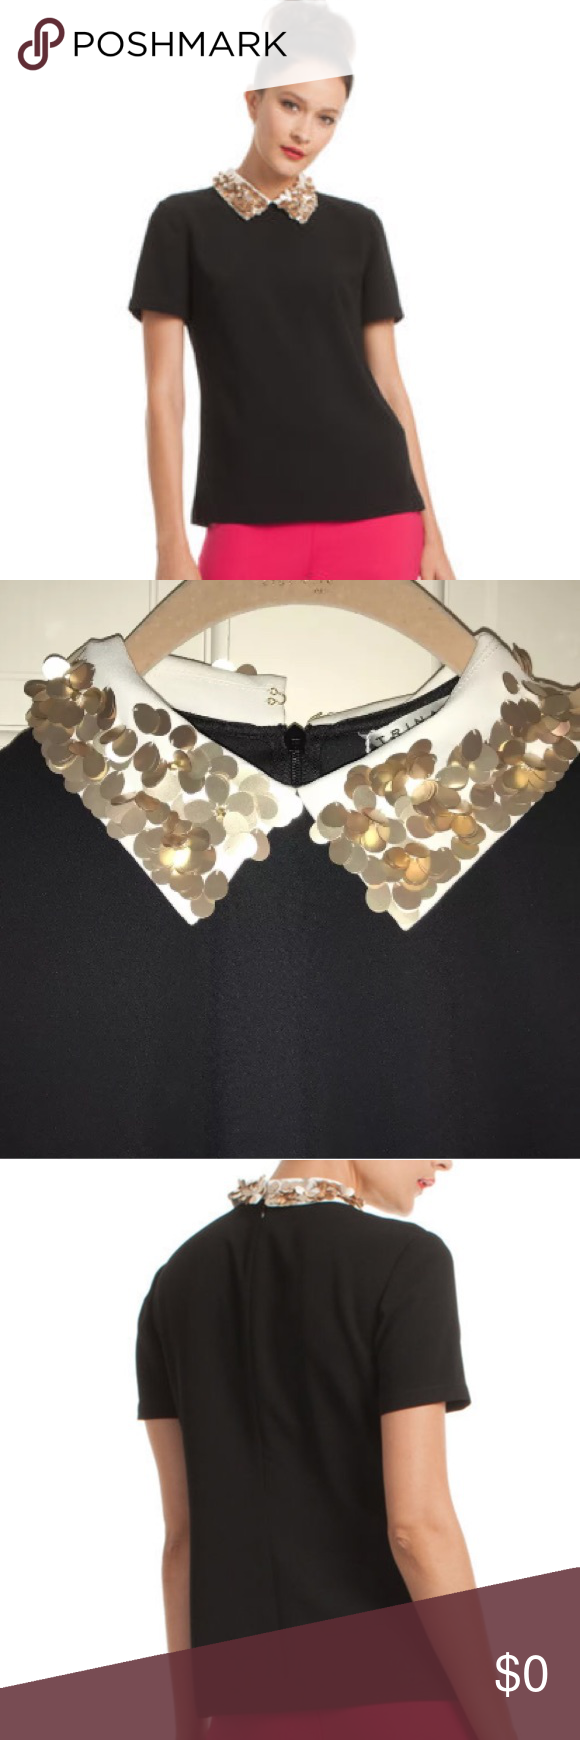 137fba0b9793aa Trina Turk Amaranth An embellished collar with take your style far this  season. With sparkly